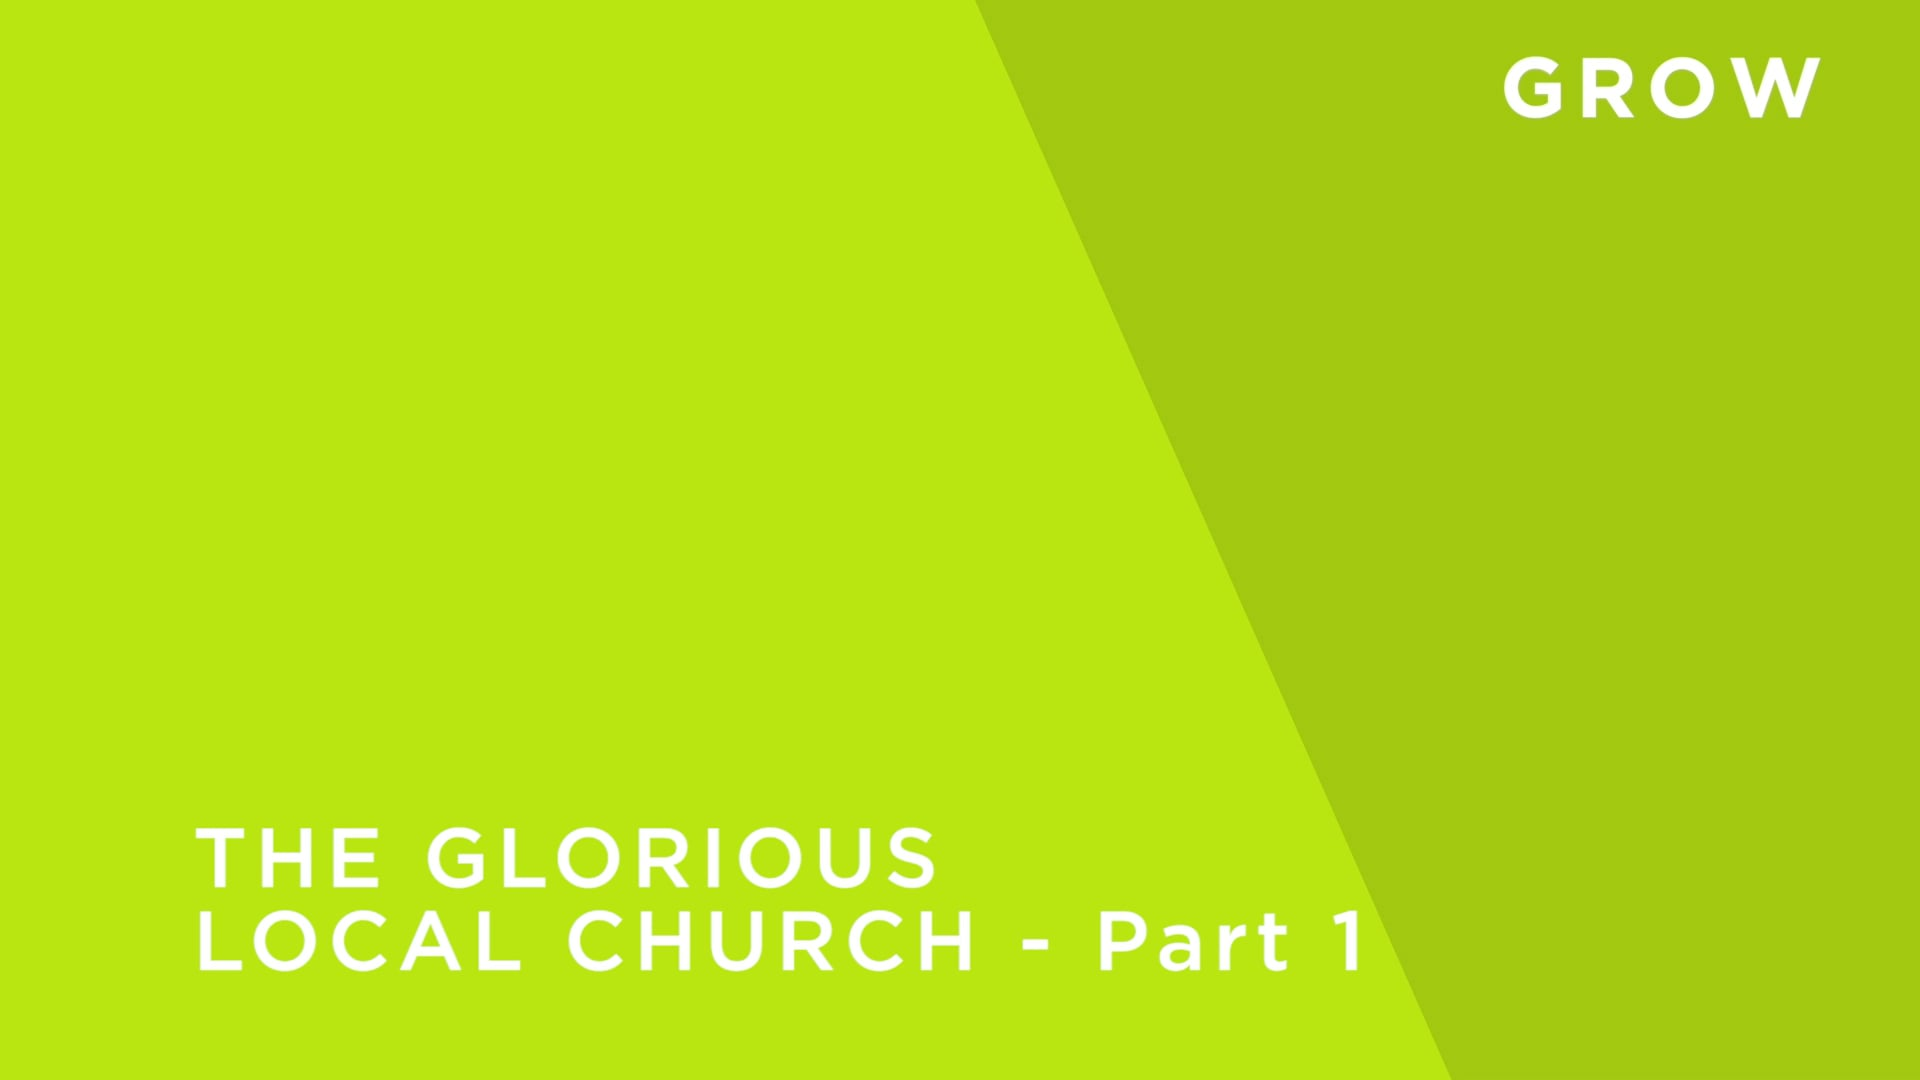 The Glorious Local Church - Part 1 - INTRODUCTION